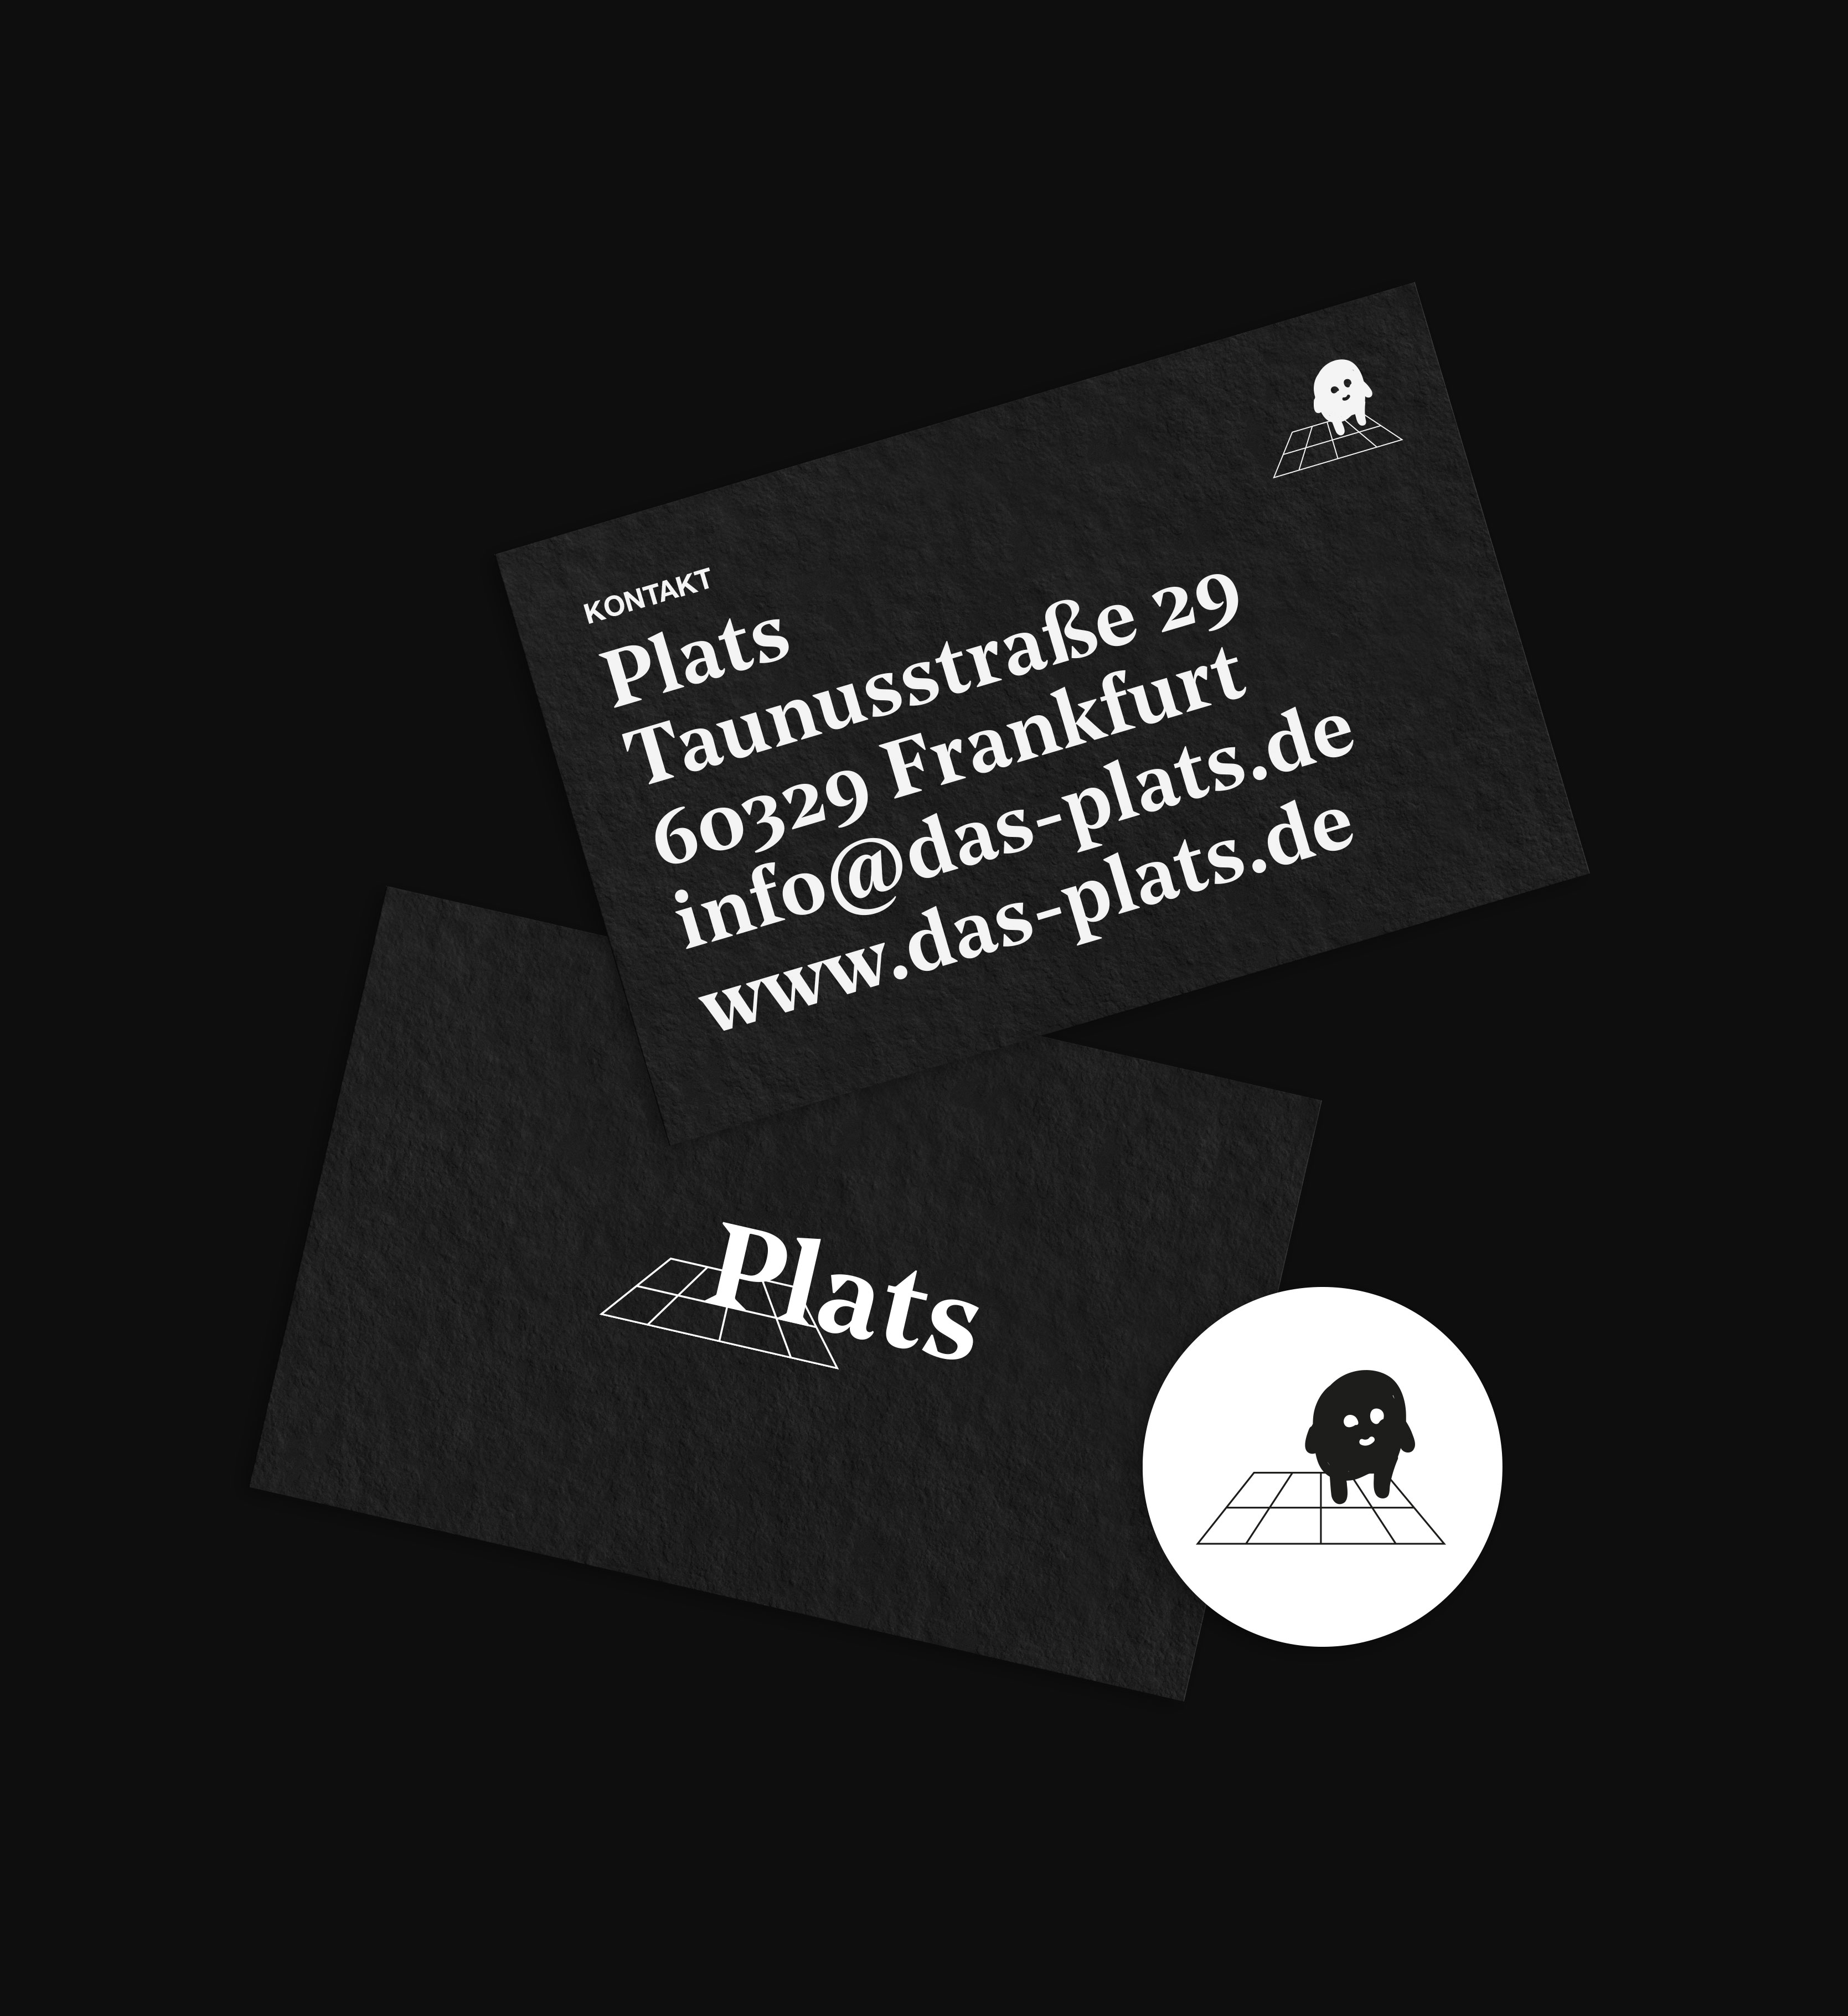 Plats Event Space Fonts In Use